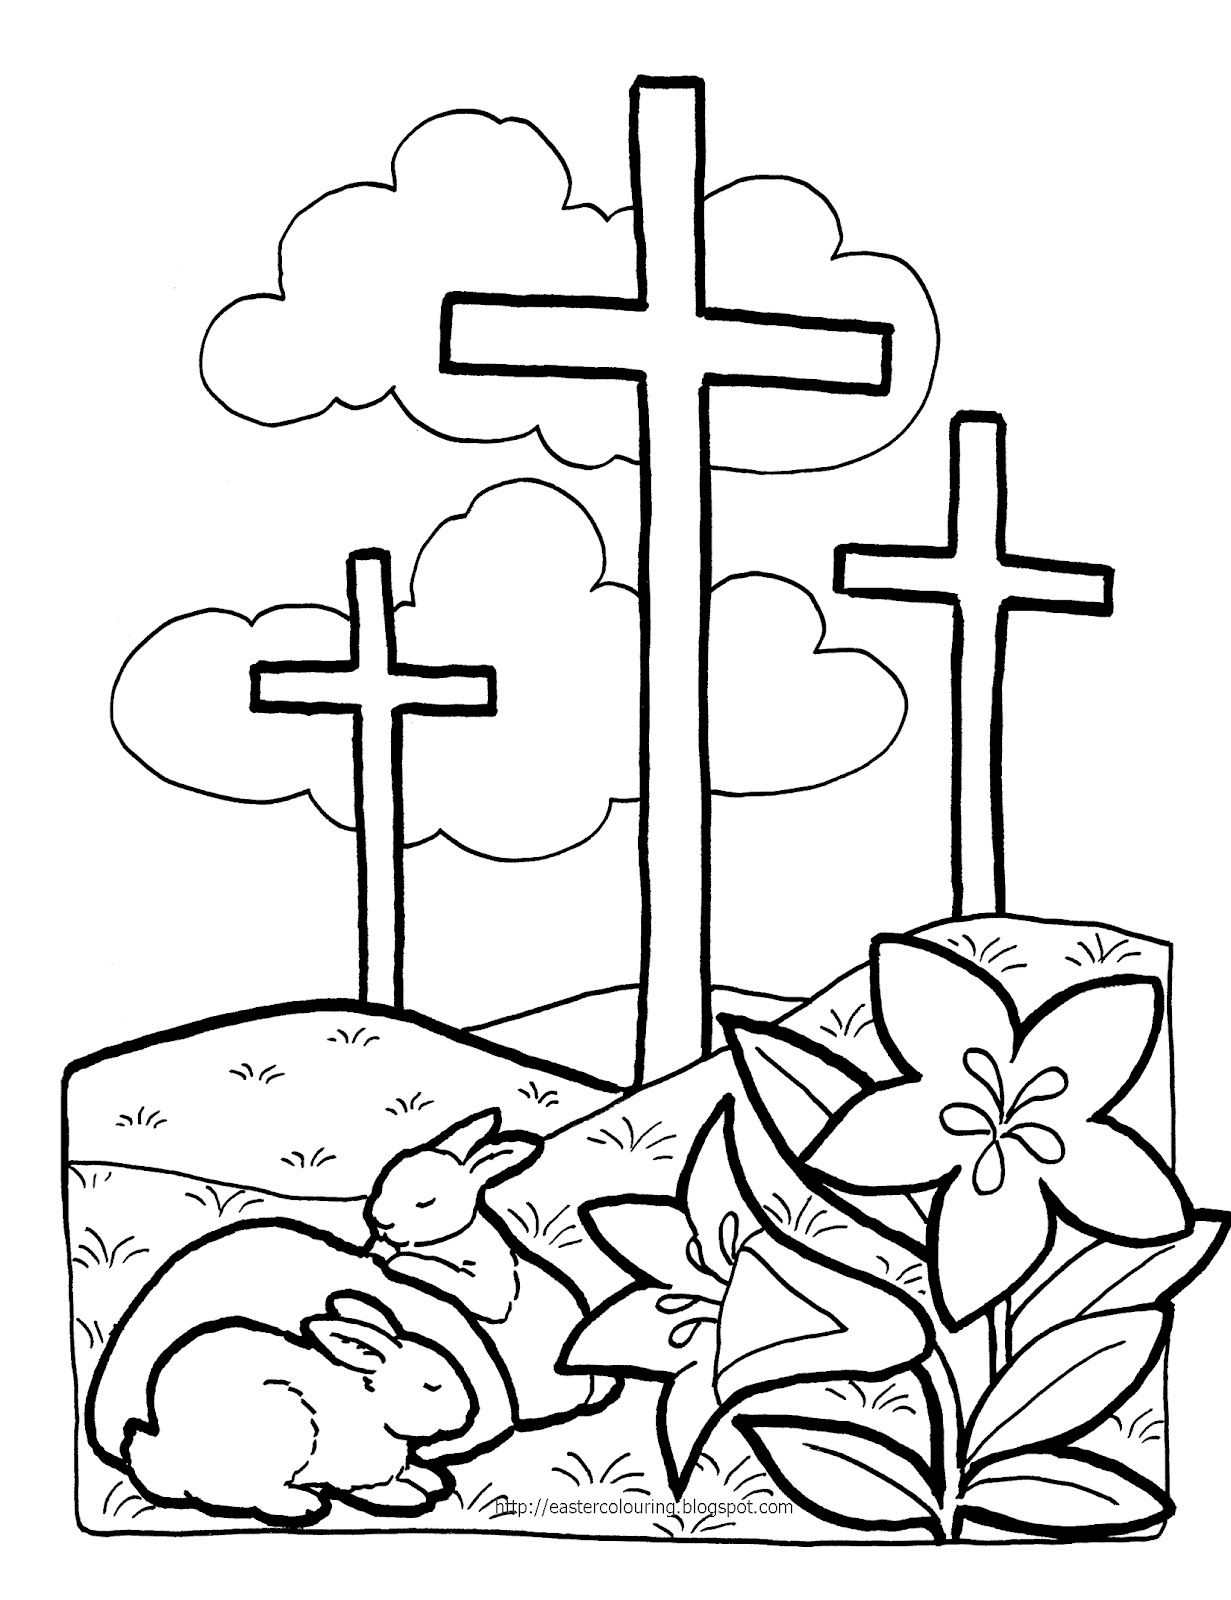 New Coloring Pages 50 Most Dandy Jesus Easter Design John 21 ...